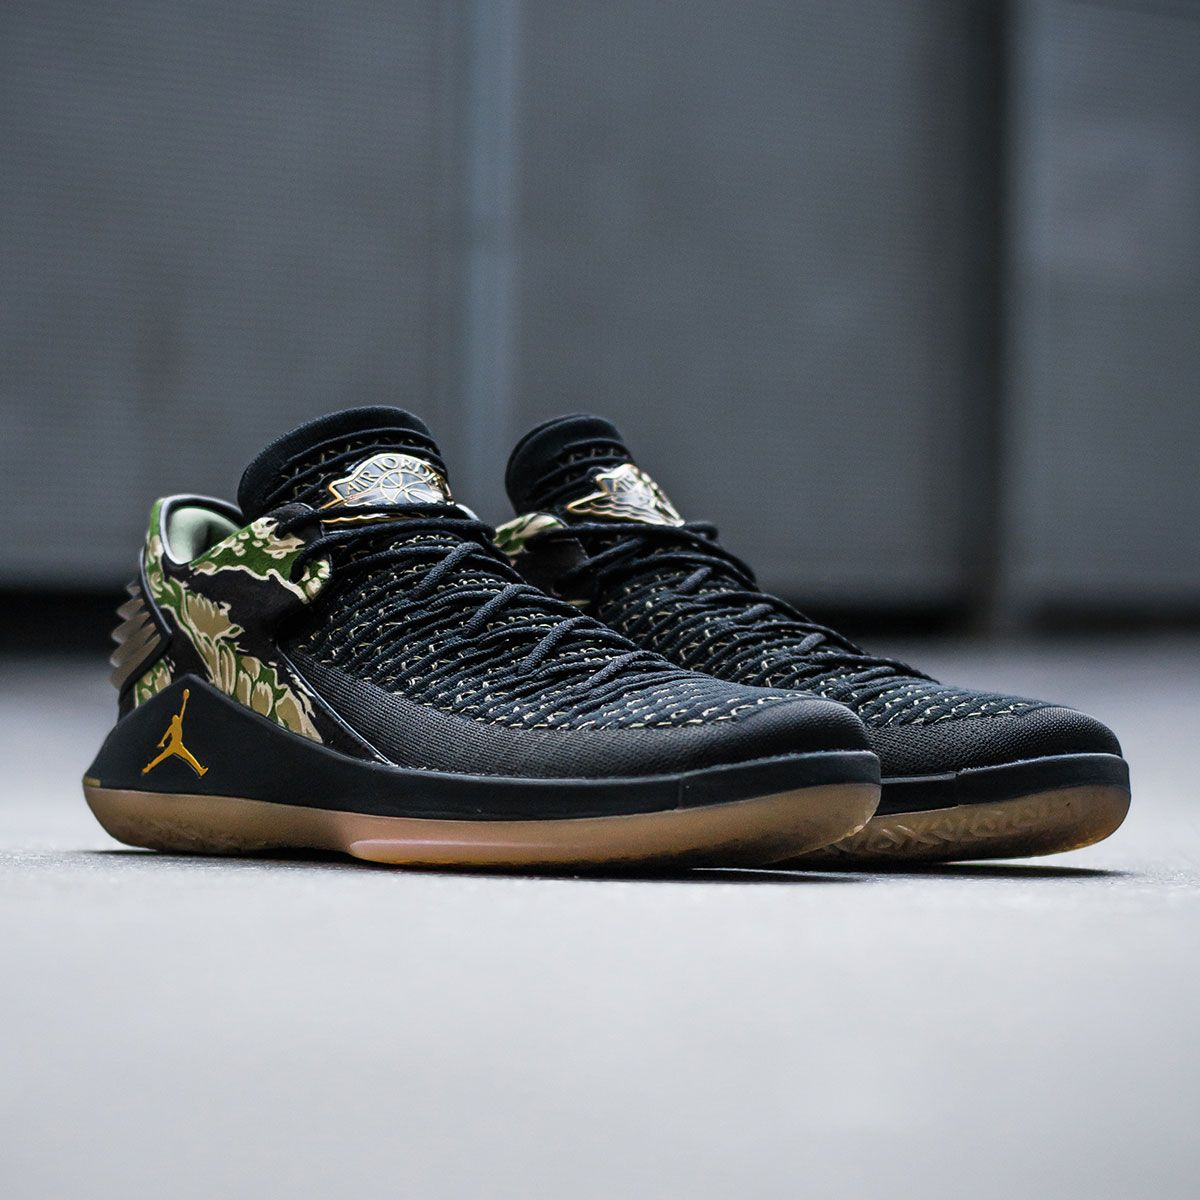 huge selection of 60b51 baec1 These black Air Jordan XXXII Low with tiger camo around the heel and golden  accents are available now on KICKZ.com and in selected stores!